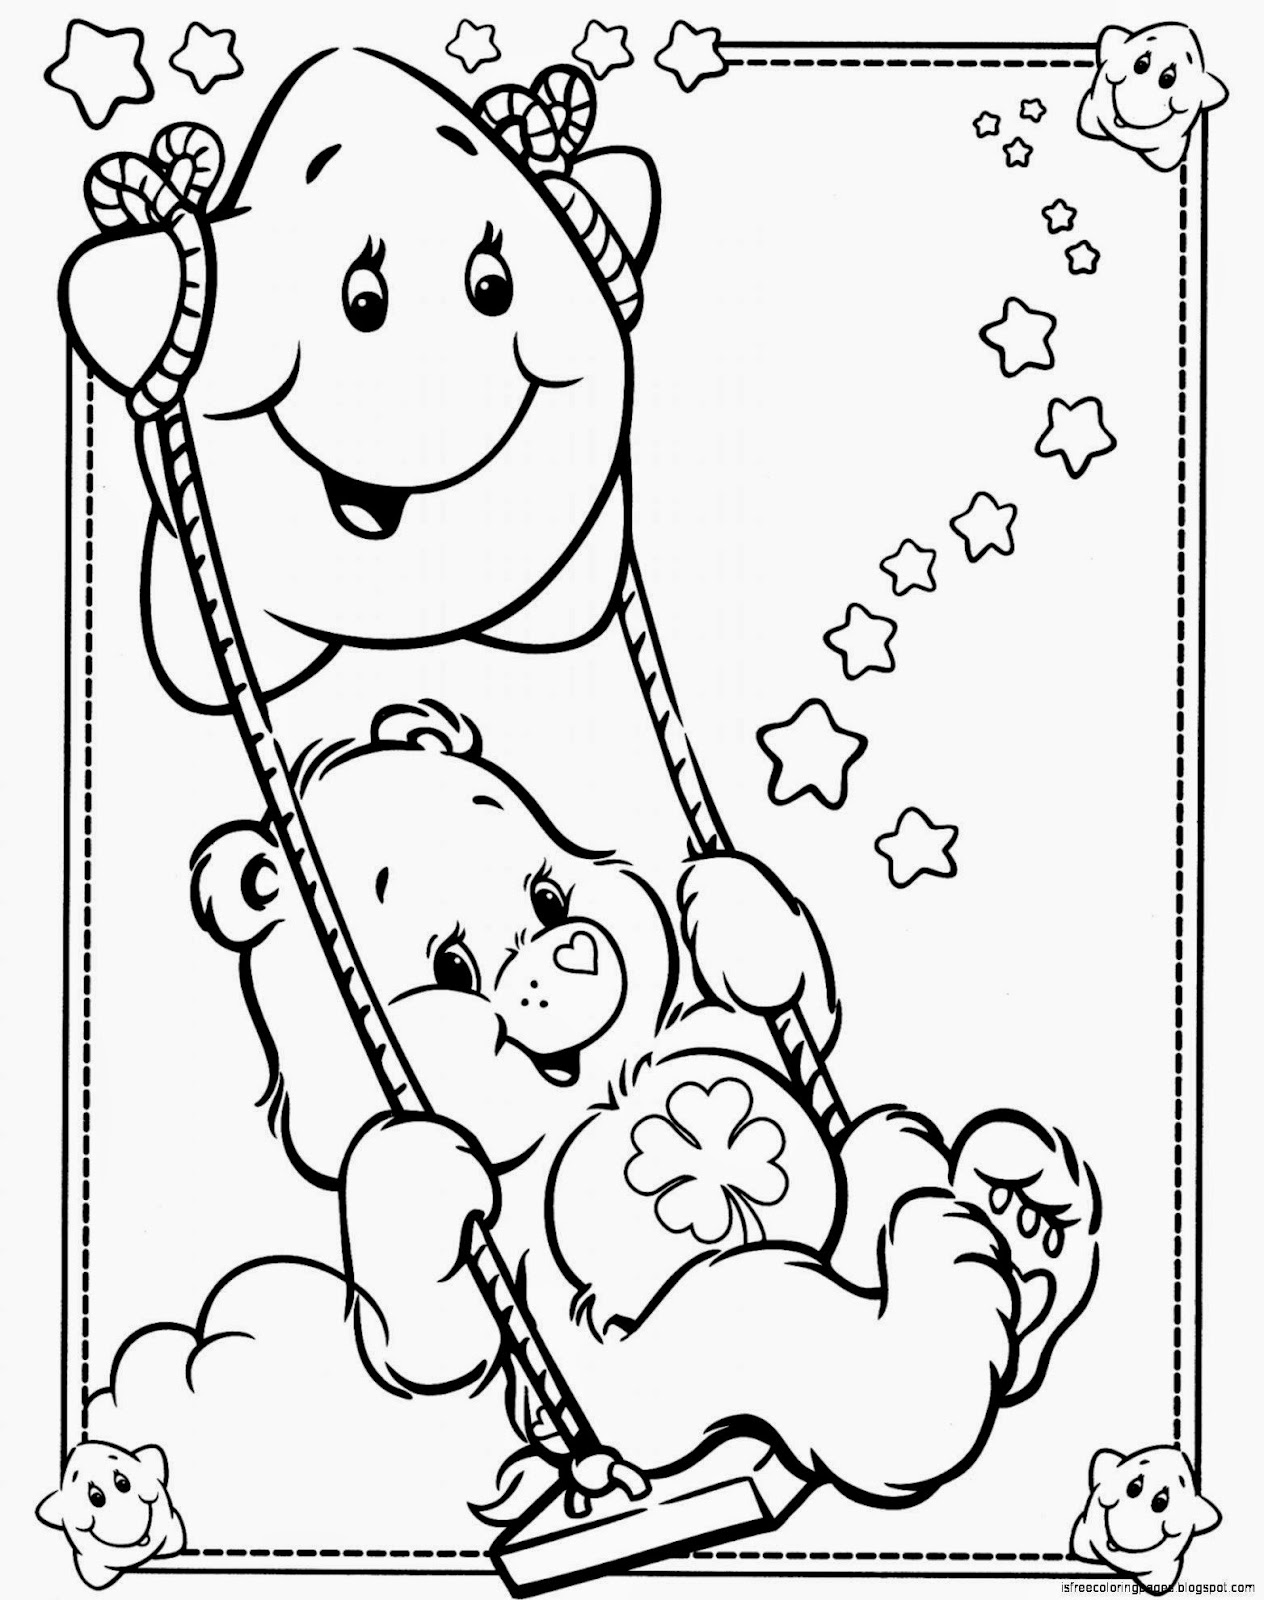 coloring pages for care bares - photo#10